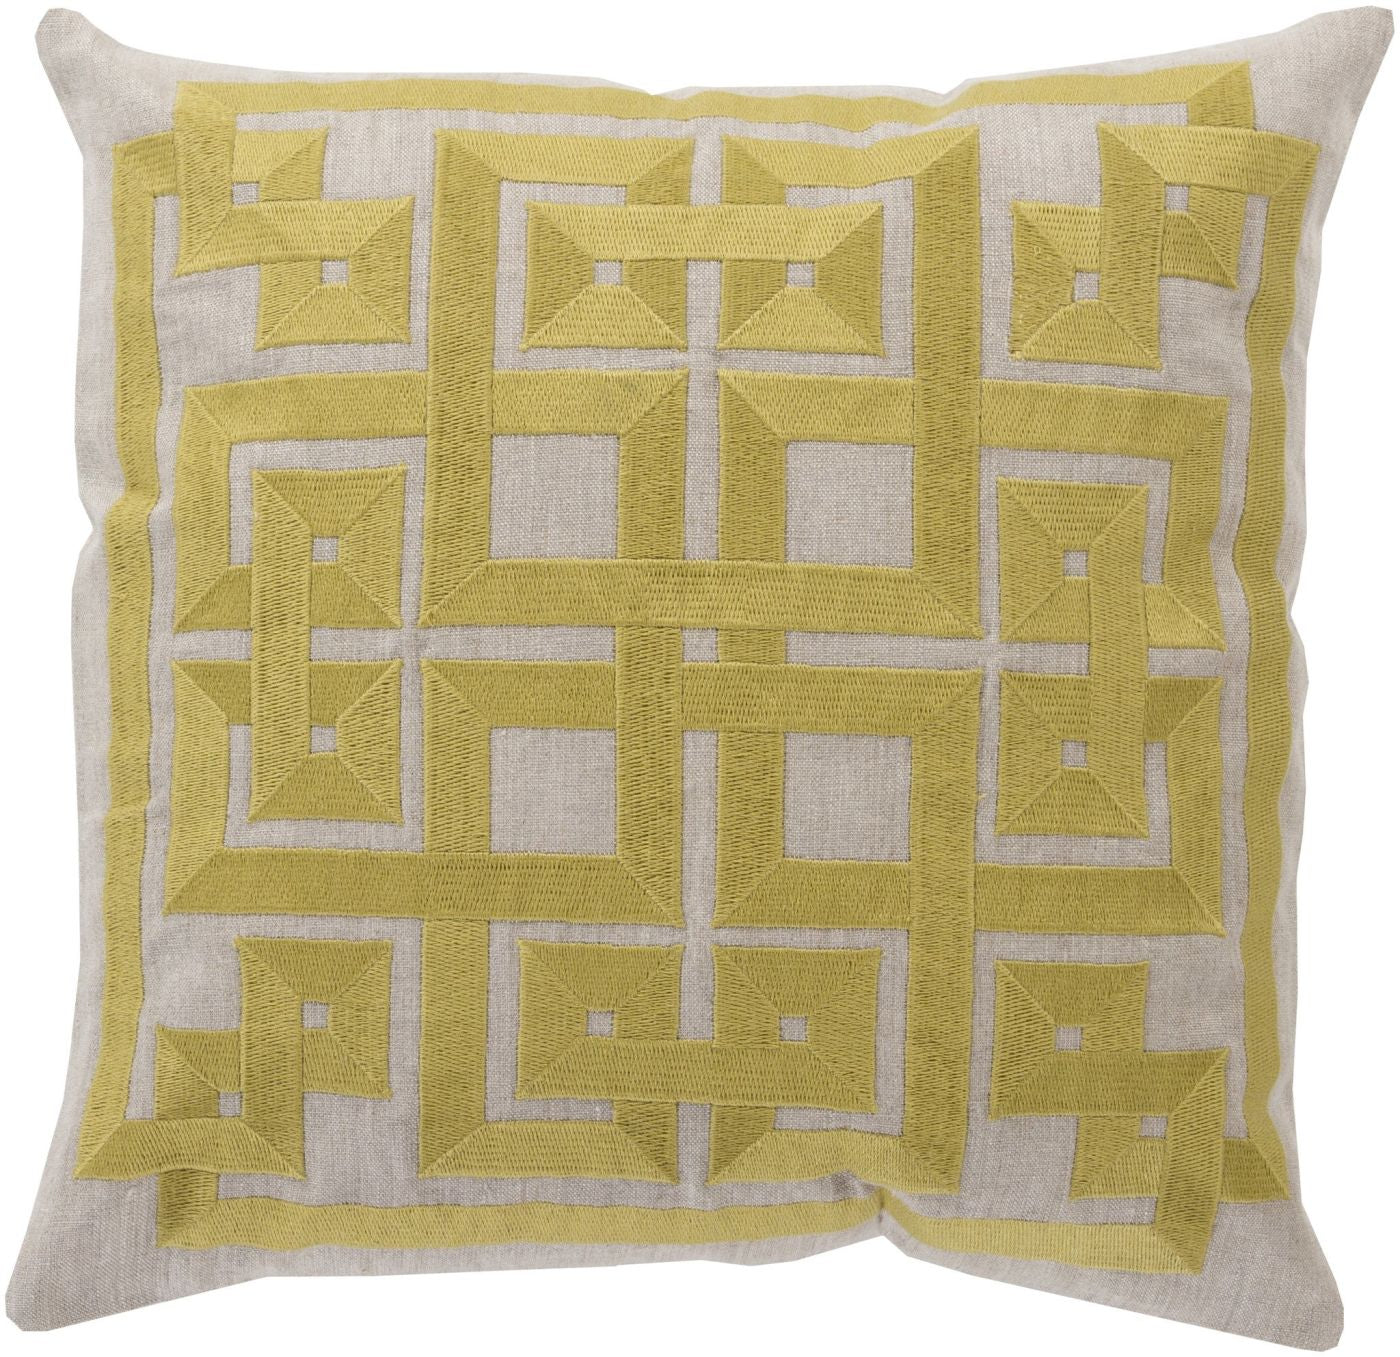 Throw Pillow Warehouse : Surya Gramercy Throw Pillow Green, Gray LD005-1818D. Only $73.80 at Contemporary Furniture ...